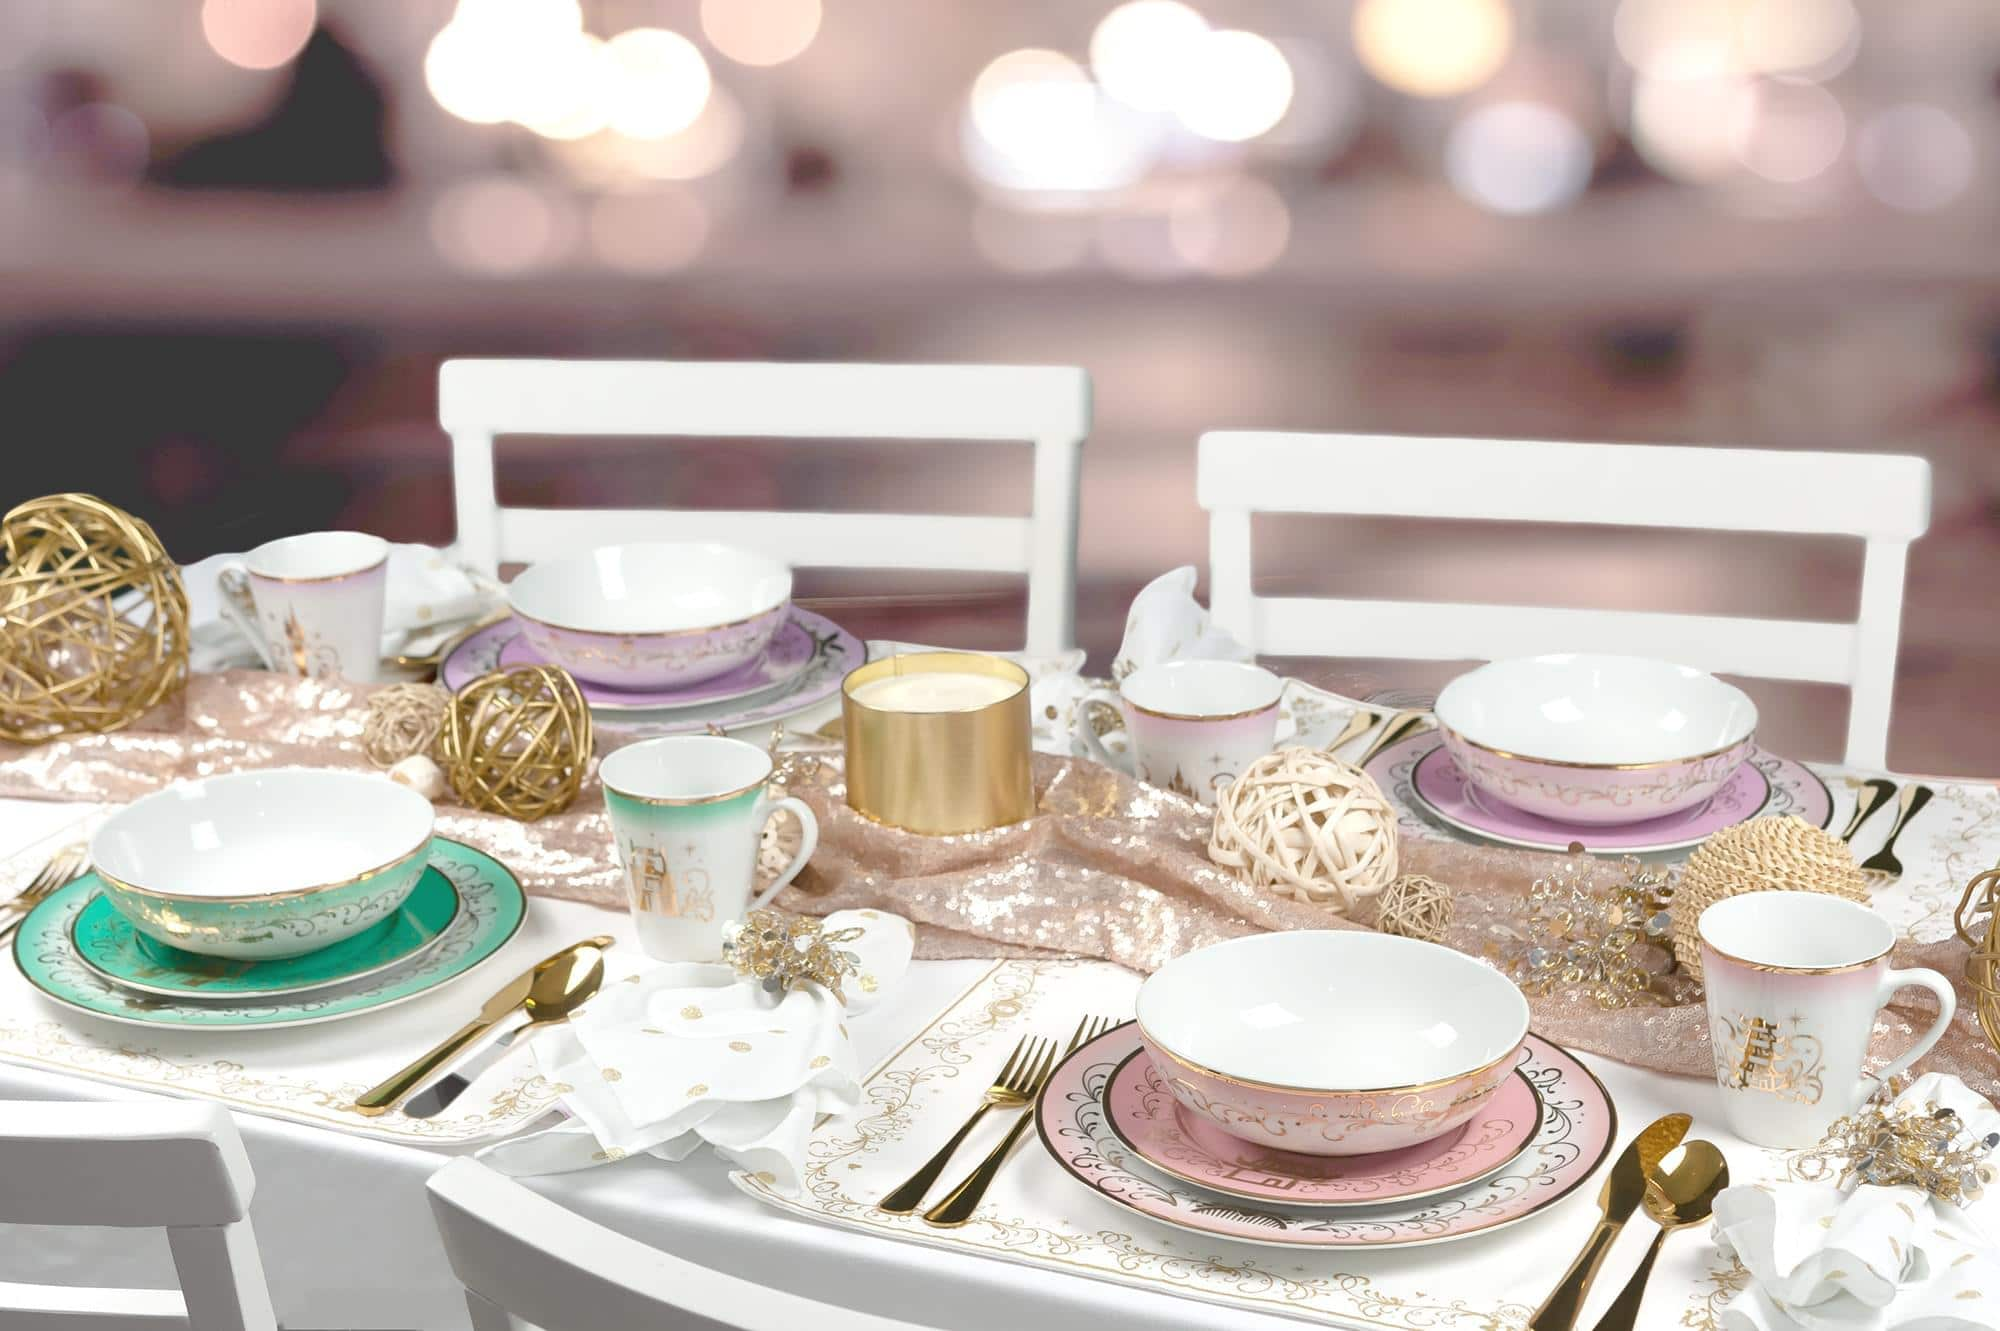 Elegant Disney Princess dinnerware collection features Frozen and Mulan 18